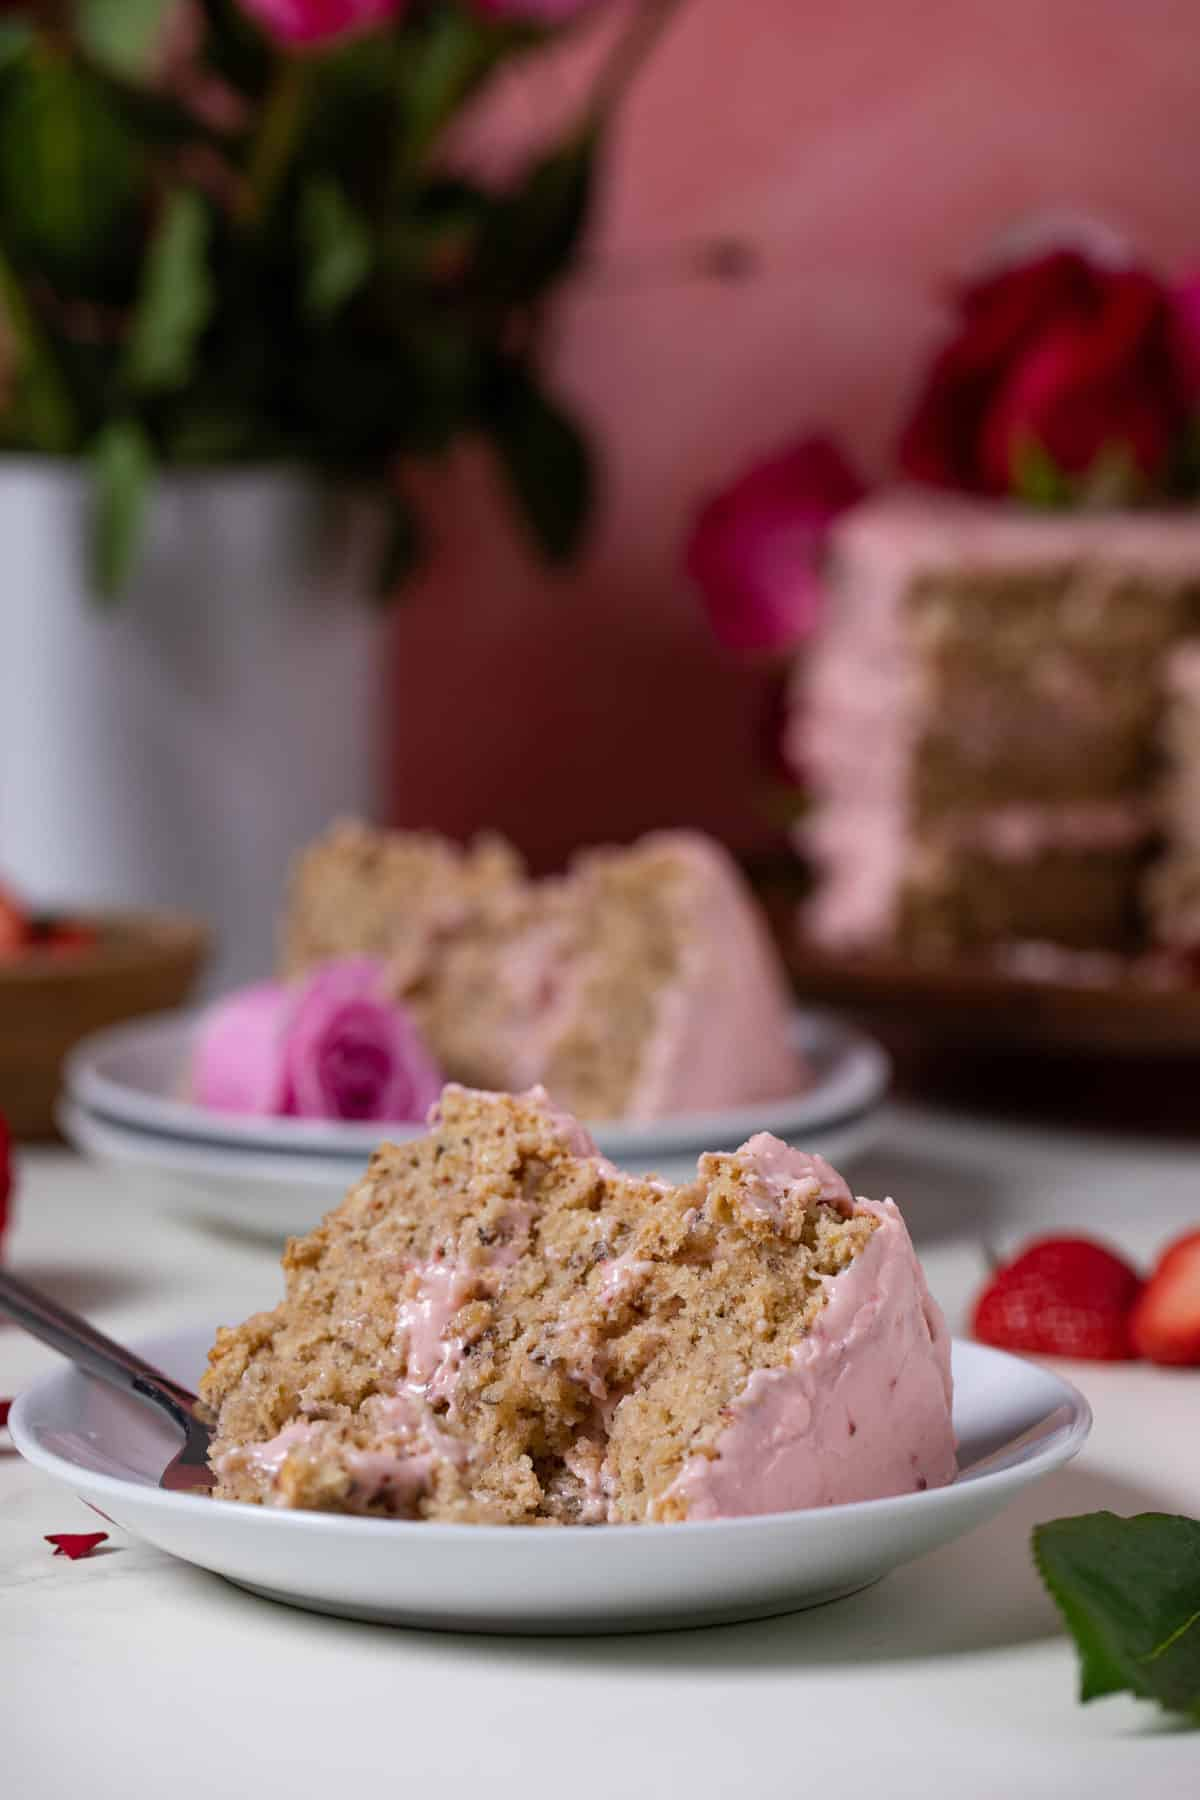 Vegan Strawberry Cake with Oatmeal